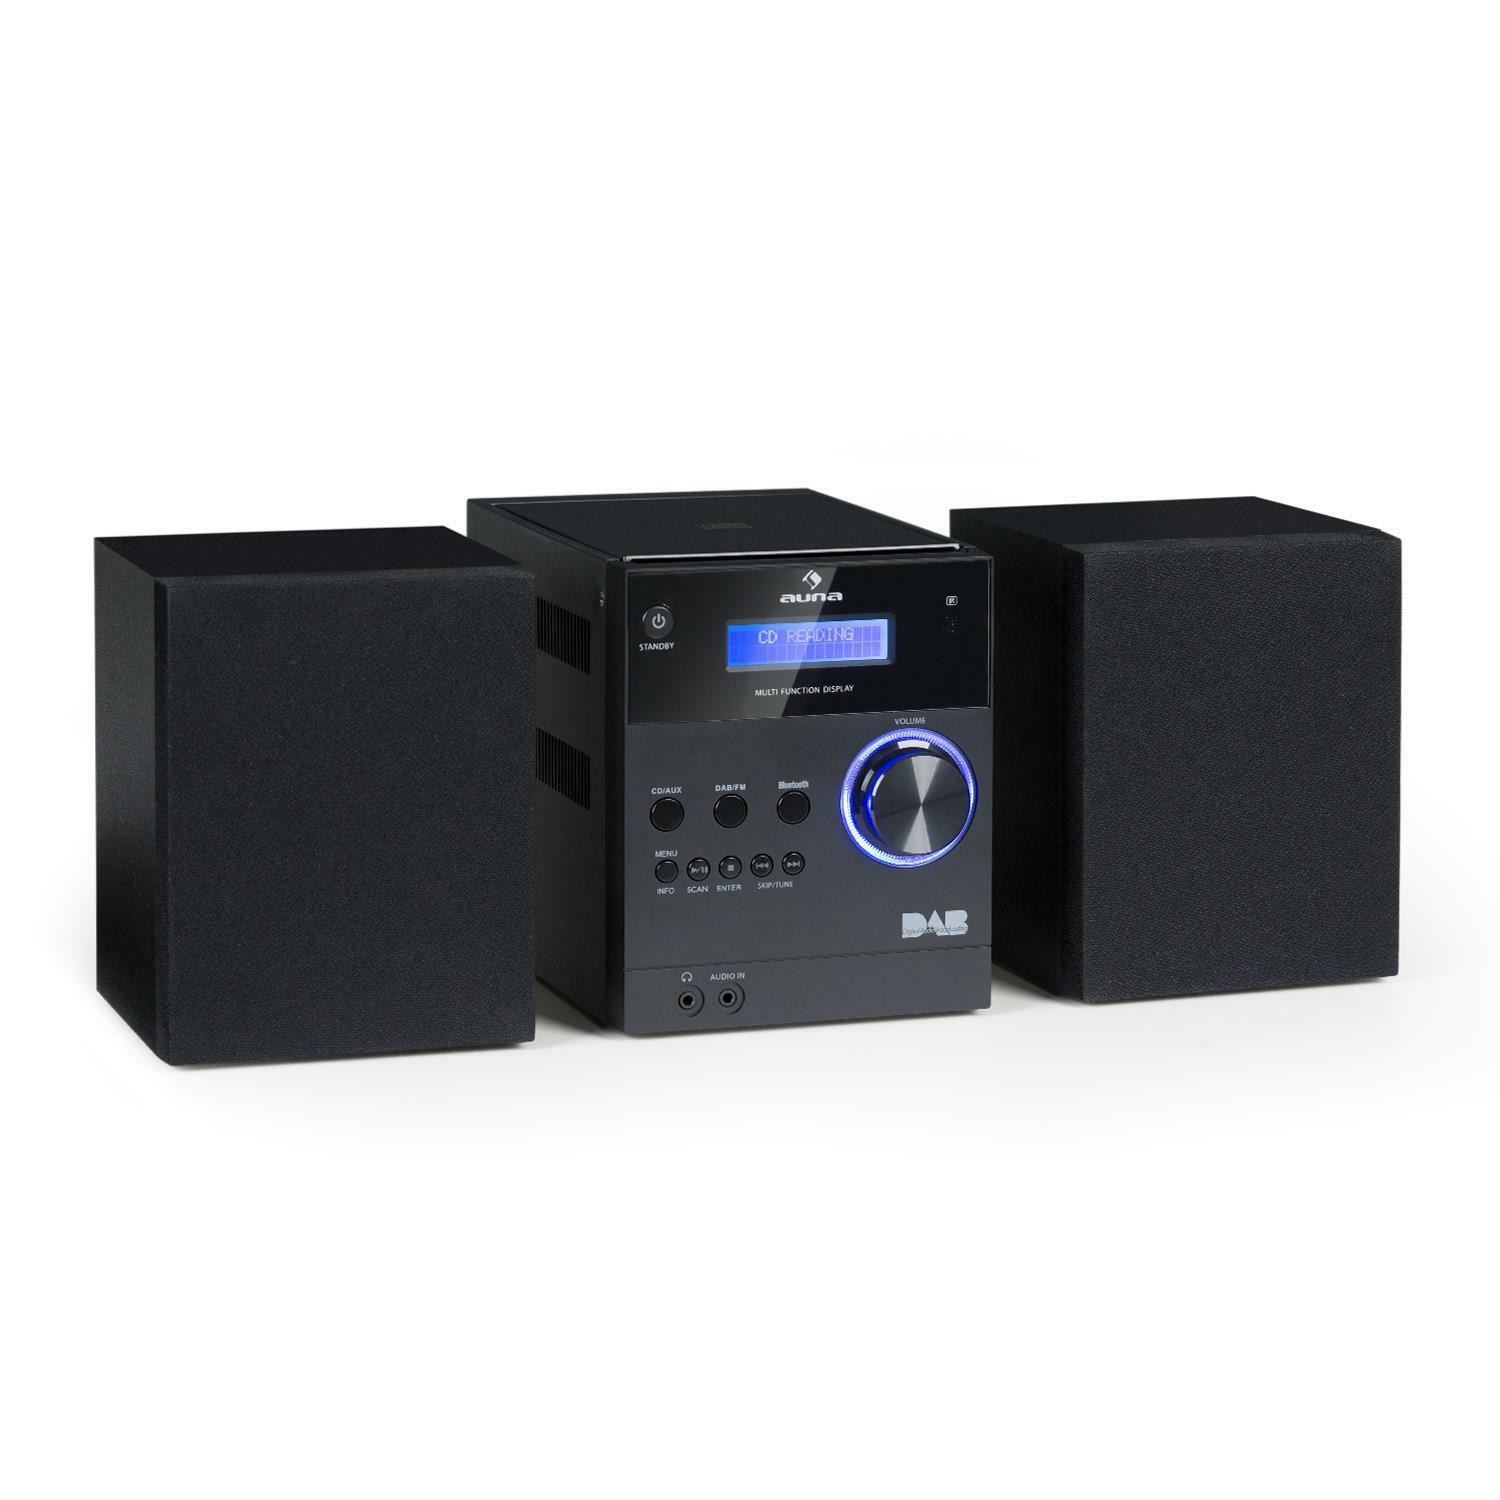 bluetooth stereo system cd mp3 player dab fm radio lcd 2 x. Black Bedroom Furniture Sets. Home Design Ideas